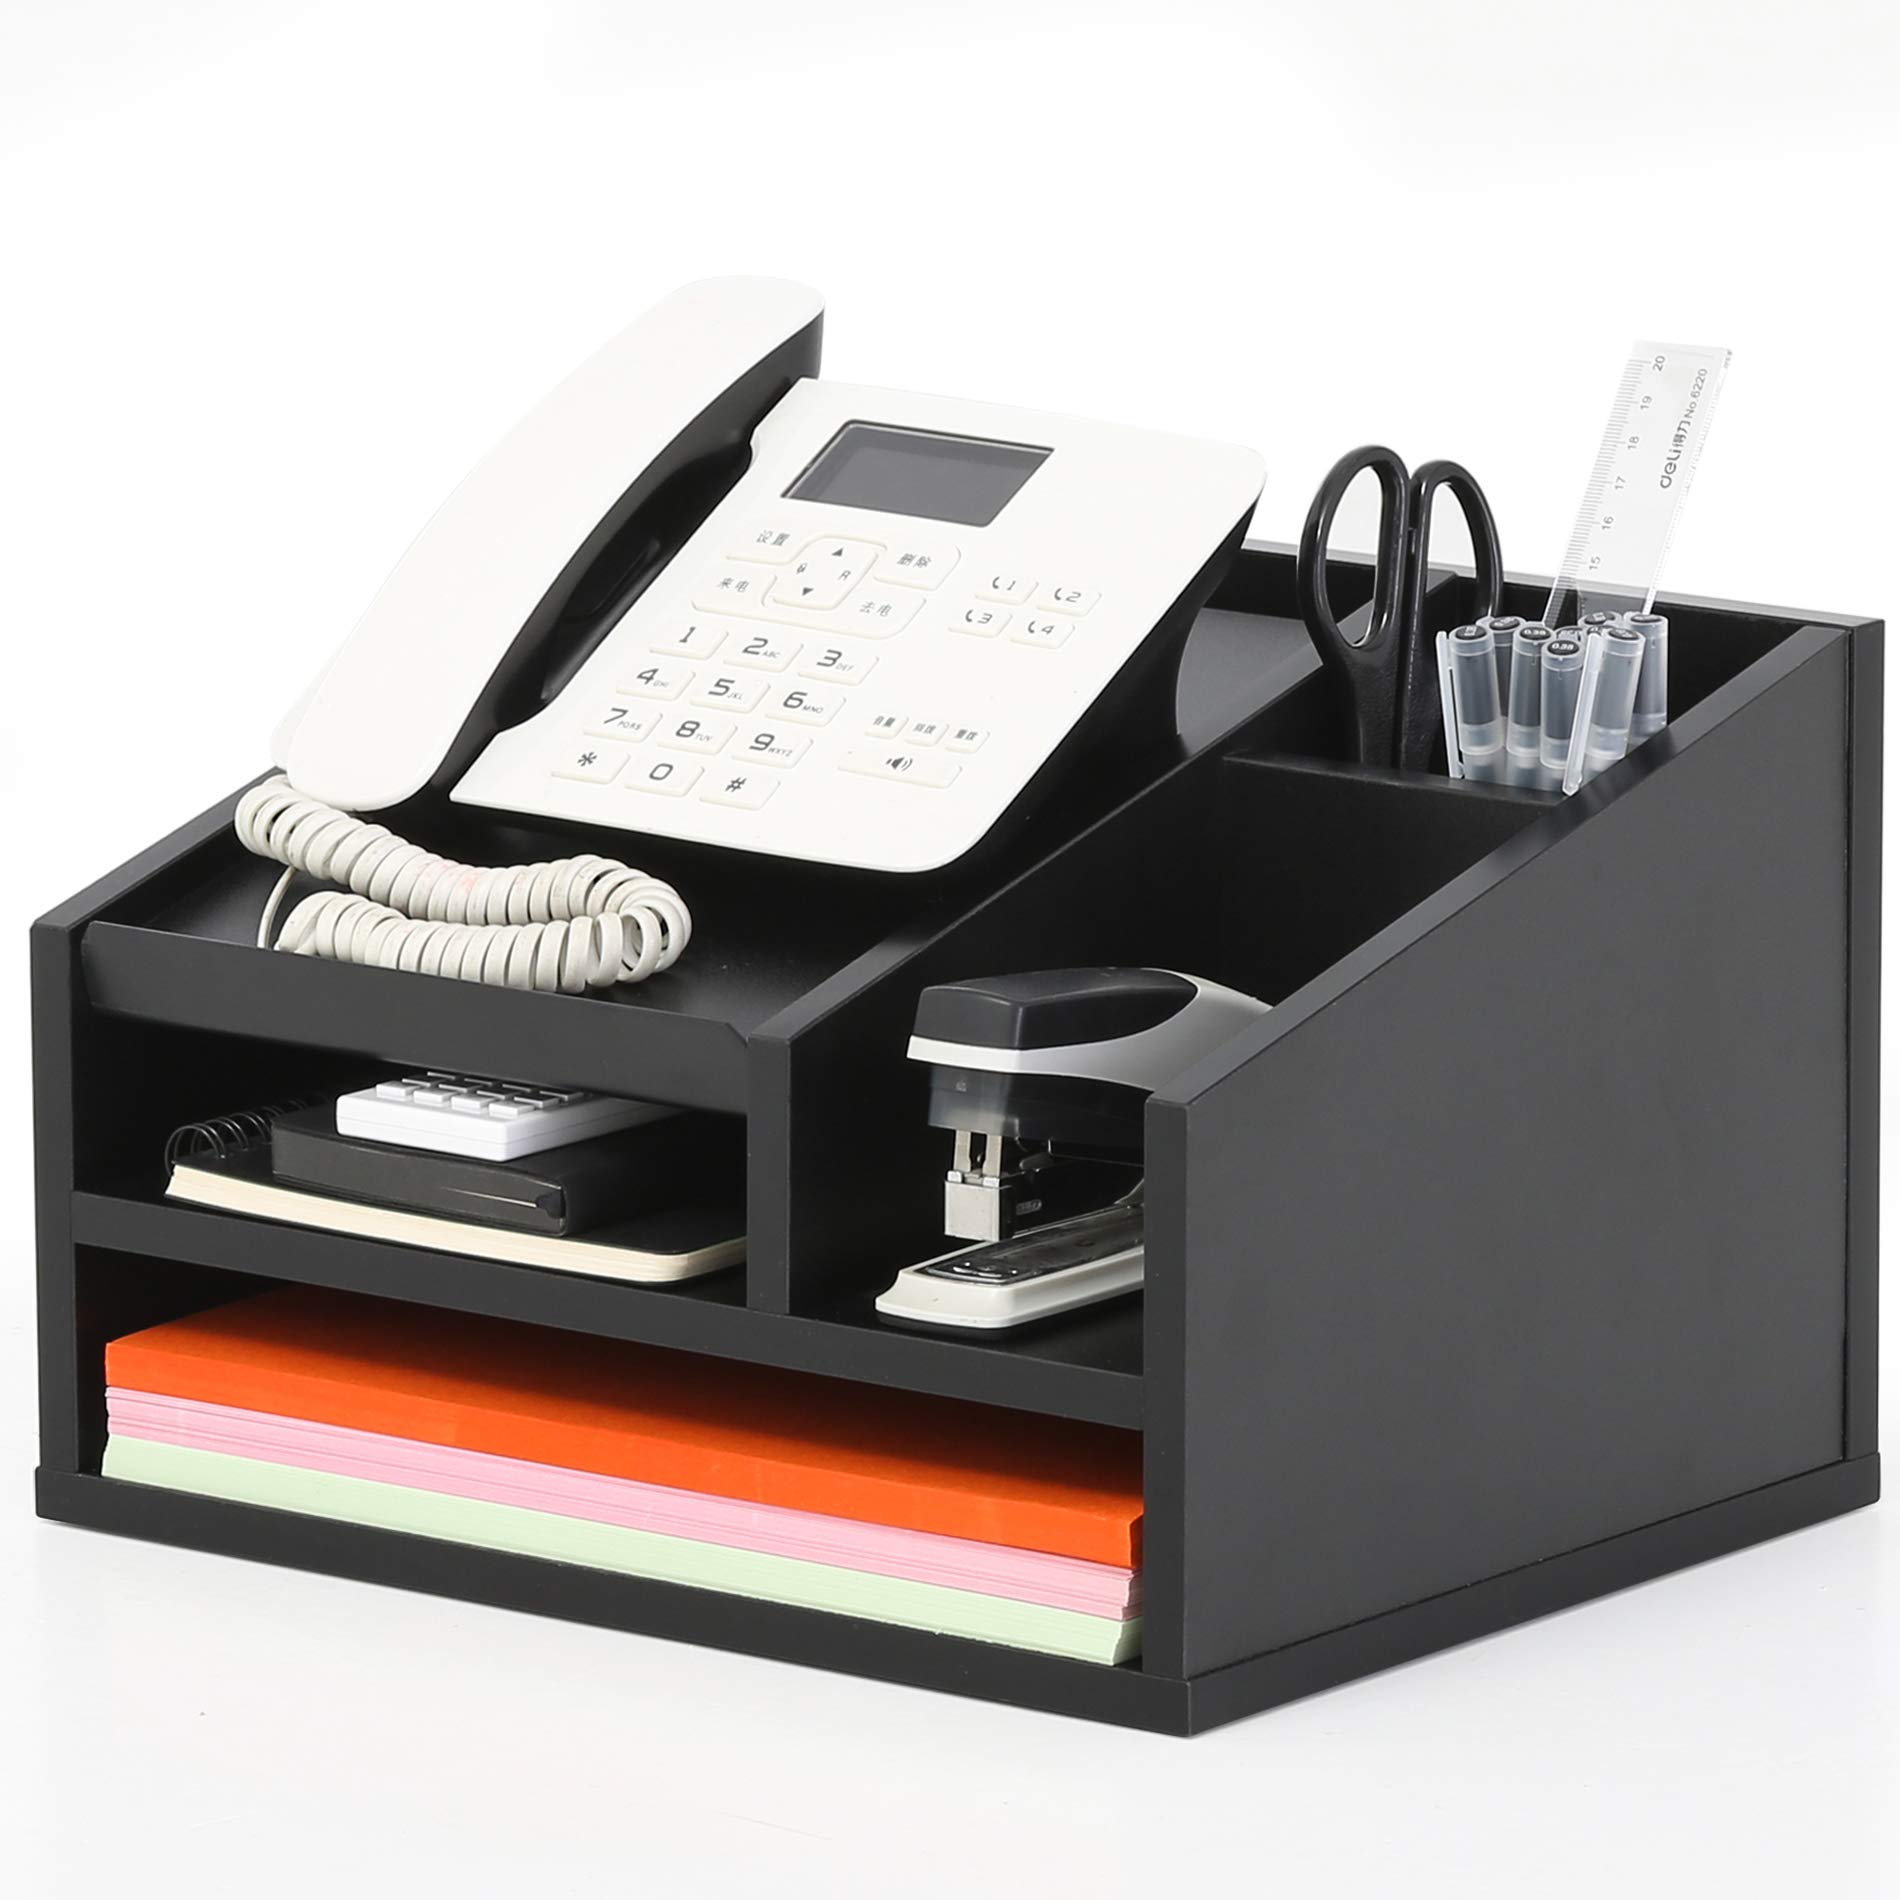 FITUEYES Wood Office Suppies Desk Organizer 5 Compartments with Letter Tray Phone Stand Pen Pencil Holder by FITUEYES